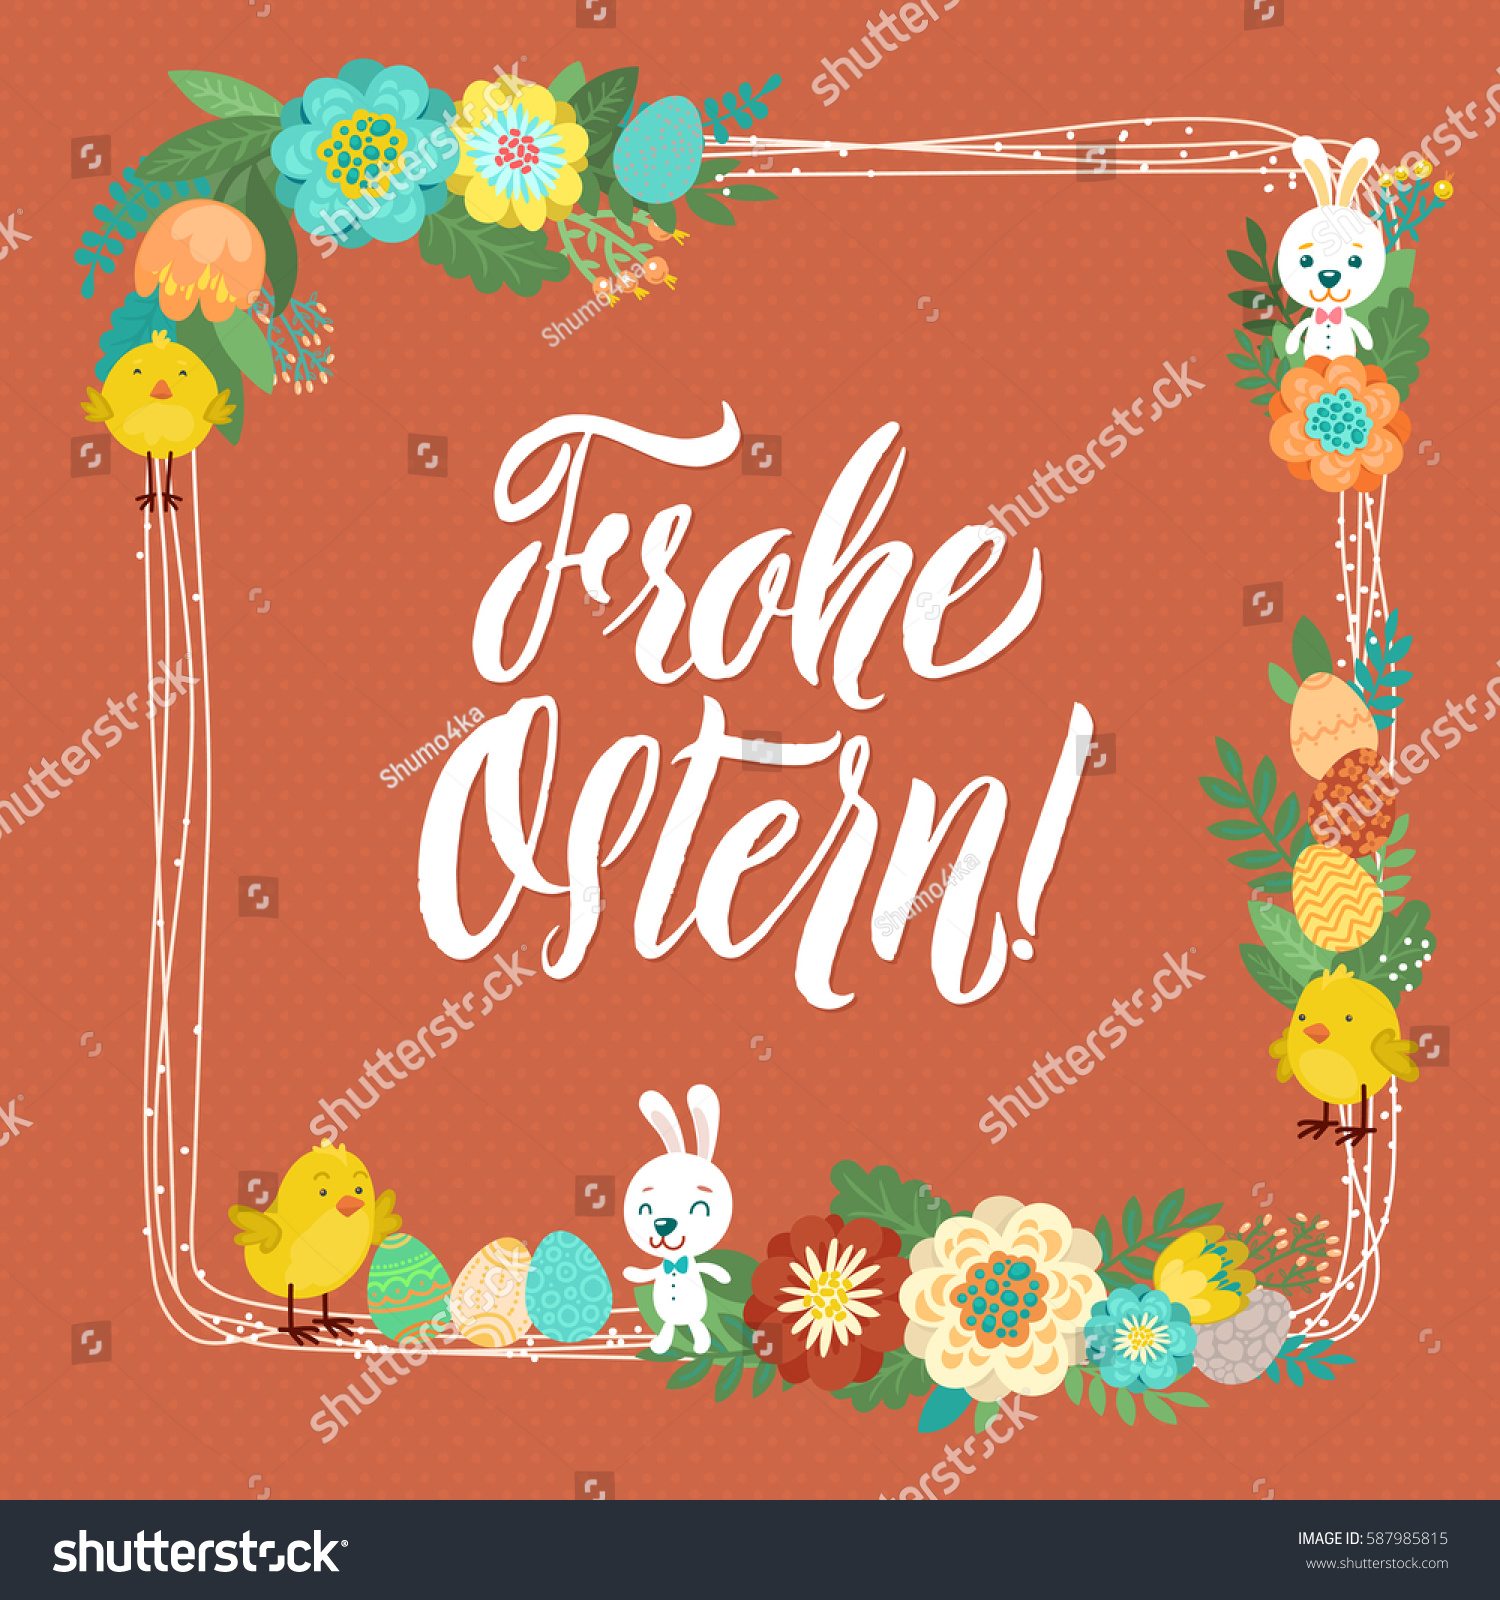 Happy Easter German Calligraphy Greeting Card Stock Photo Photo